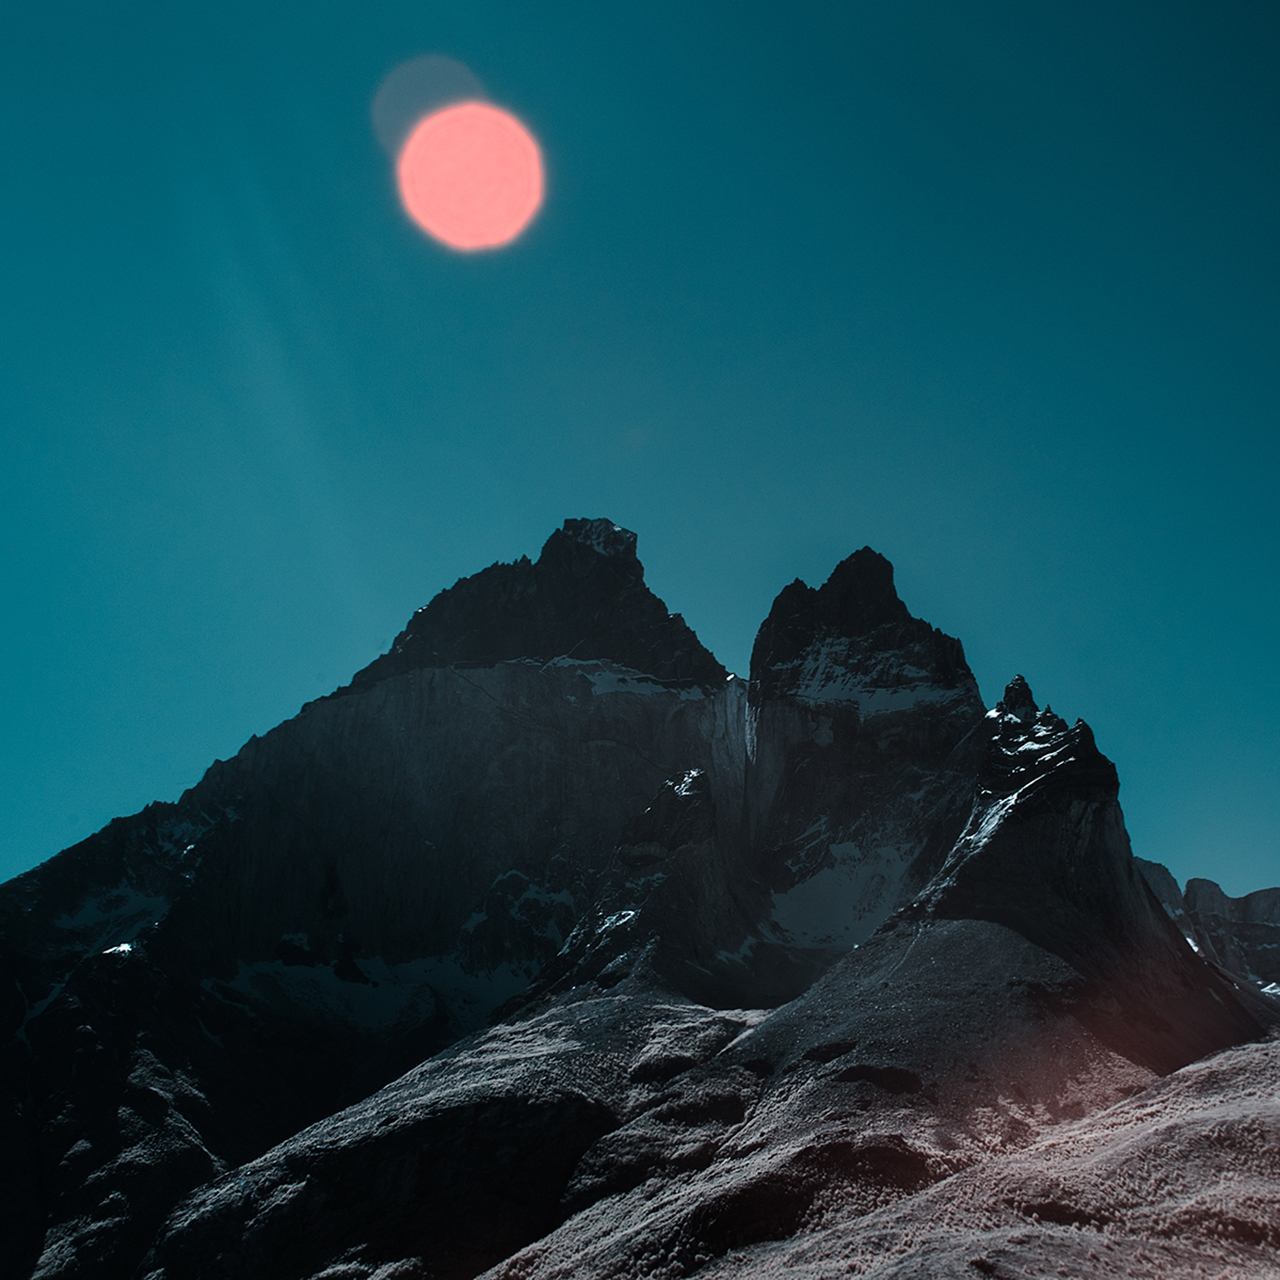 The beautiful scenery mountains Chile photos Andy Lee 16